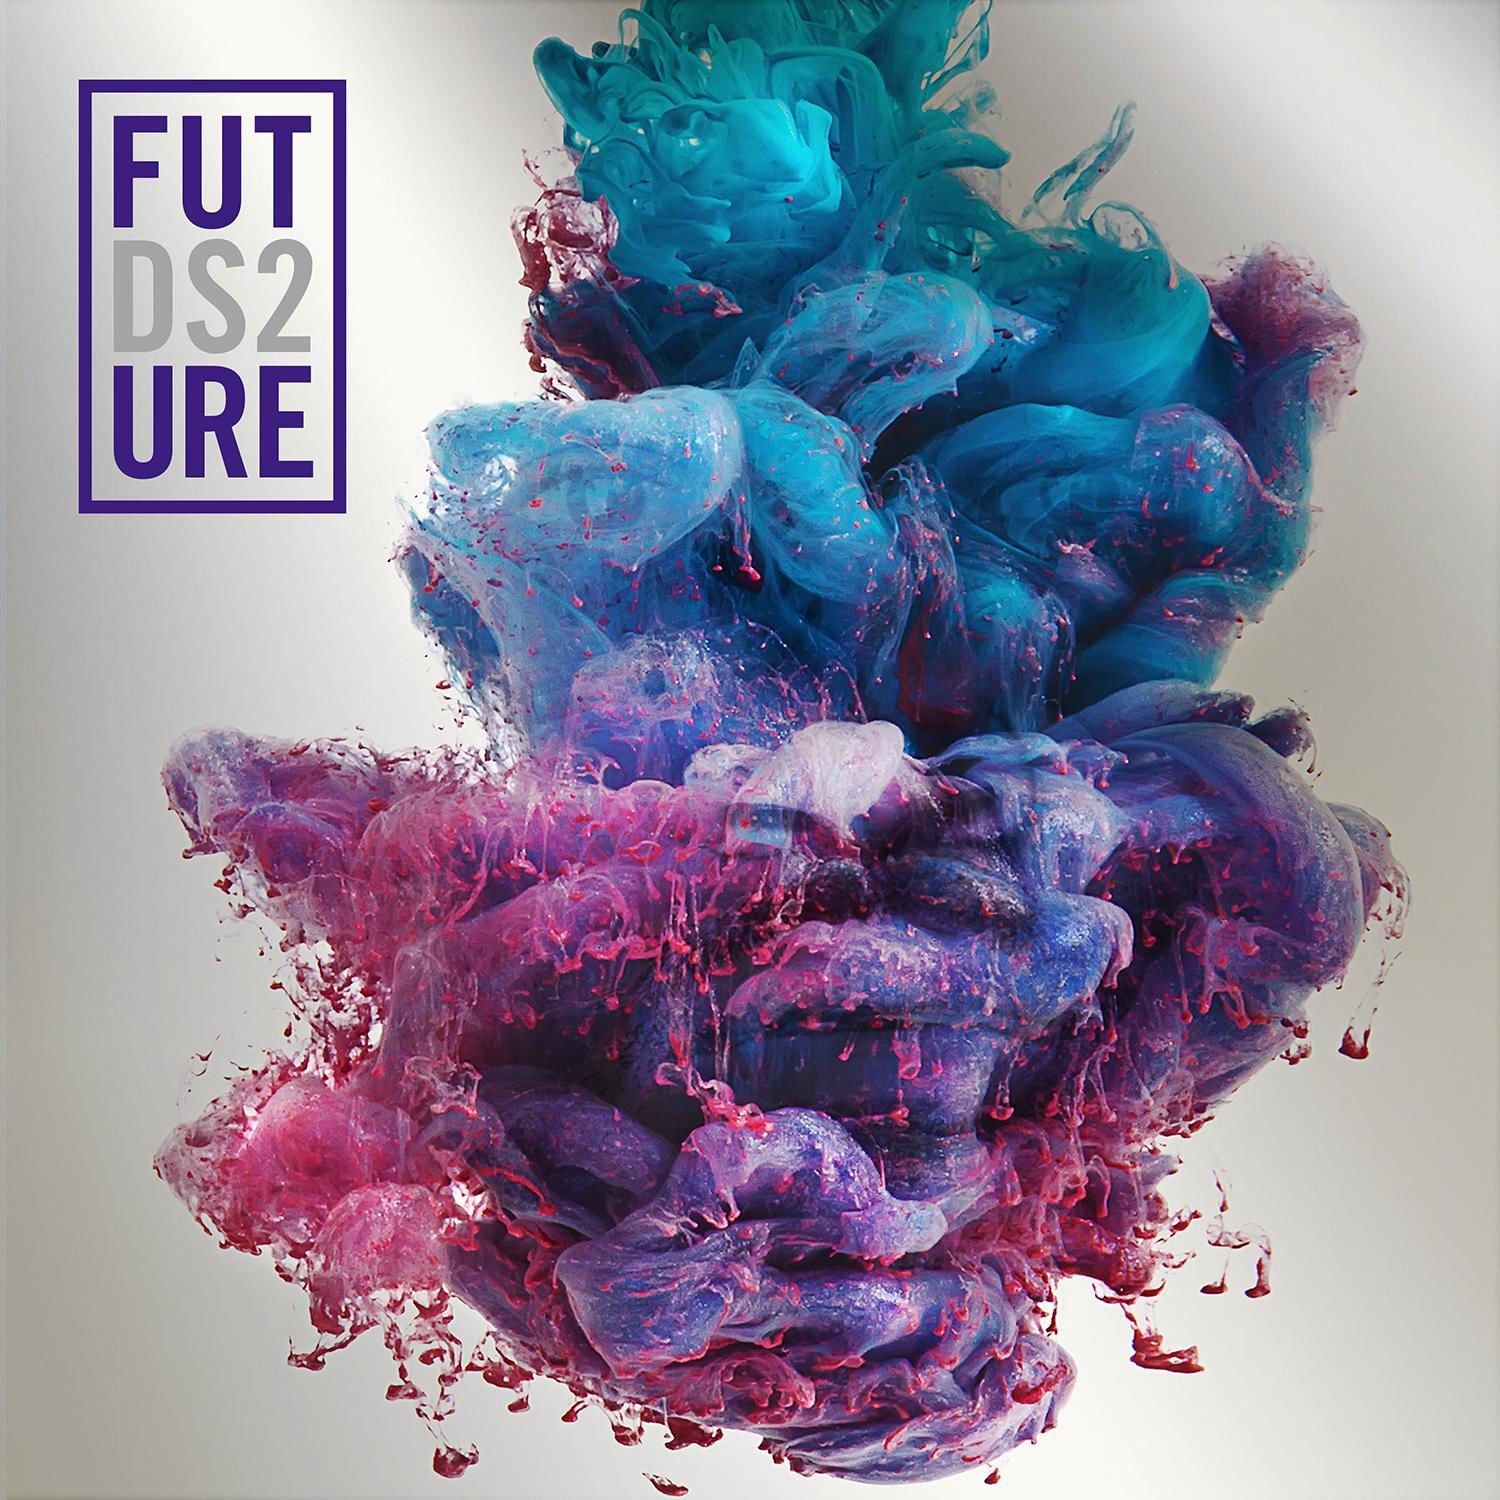 ds2 deluxe by future on itunes dqdq pinterest future and